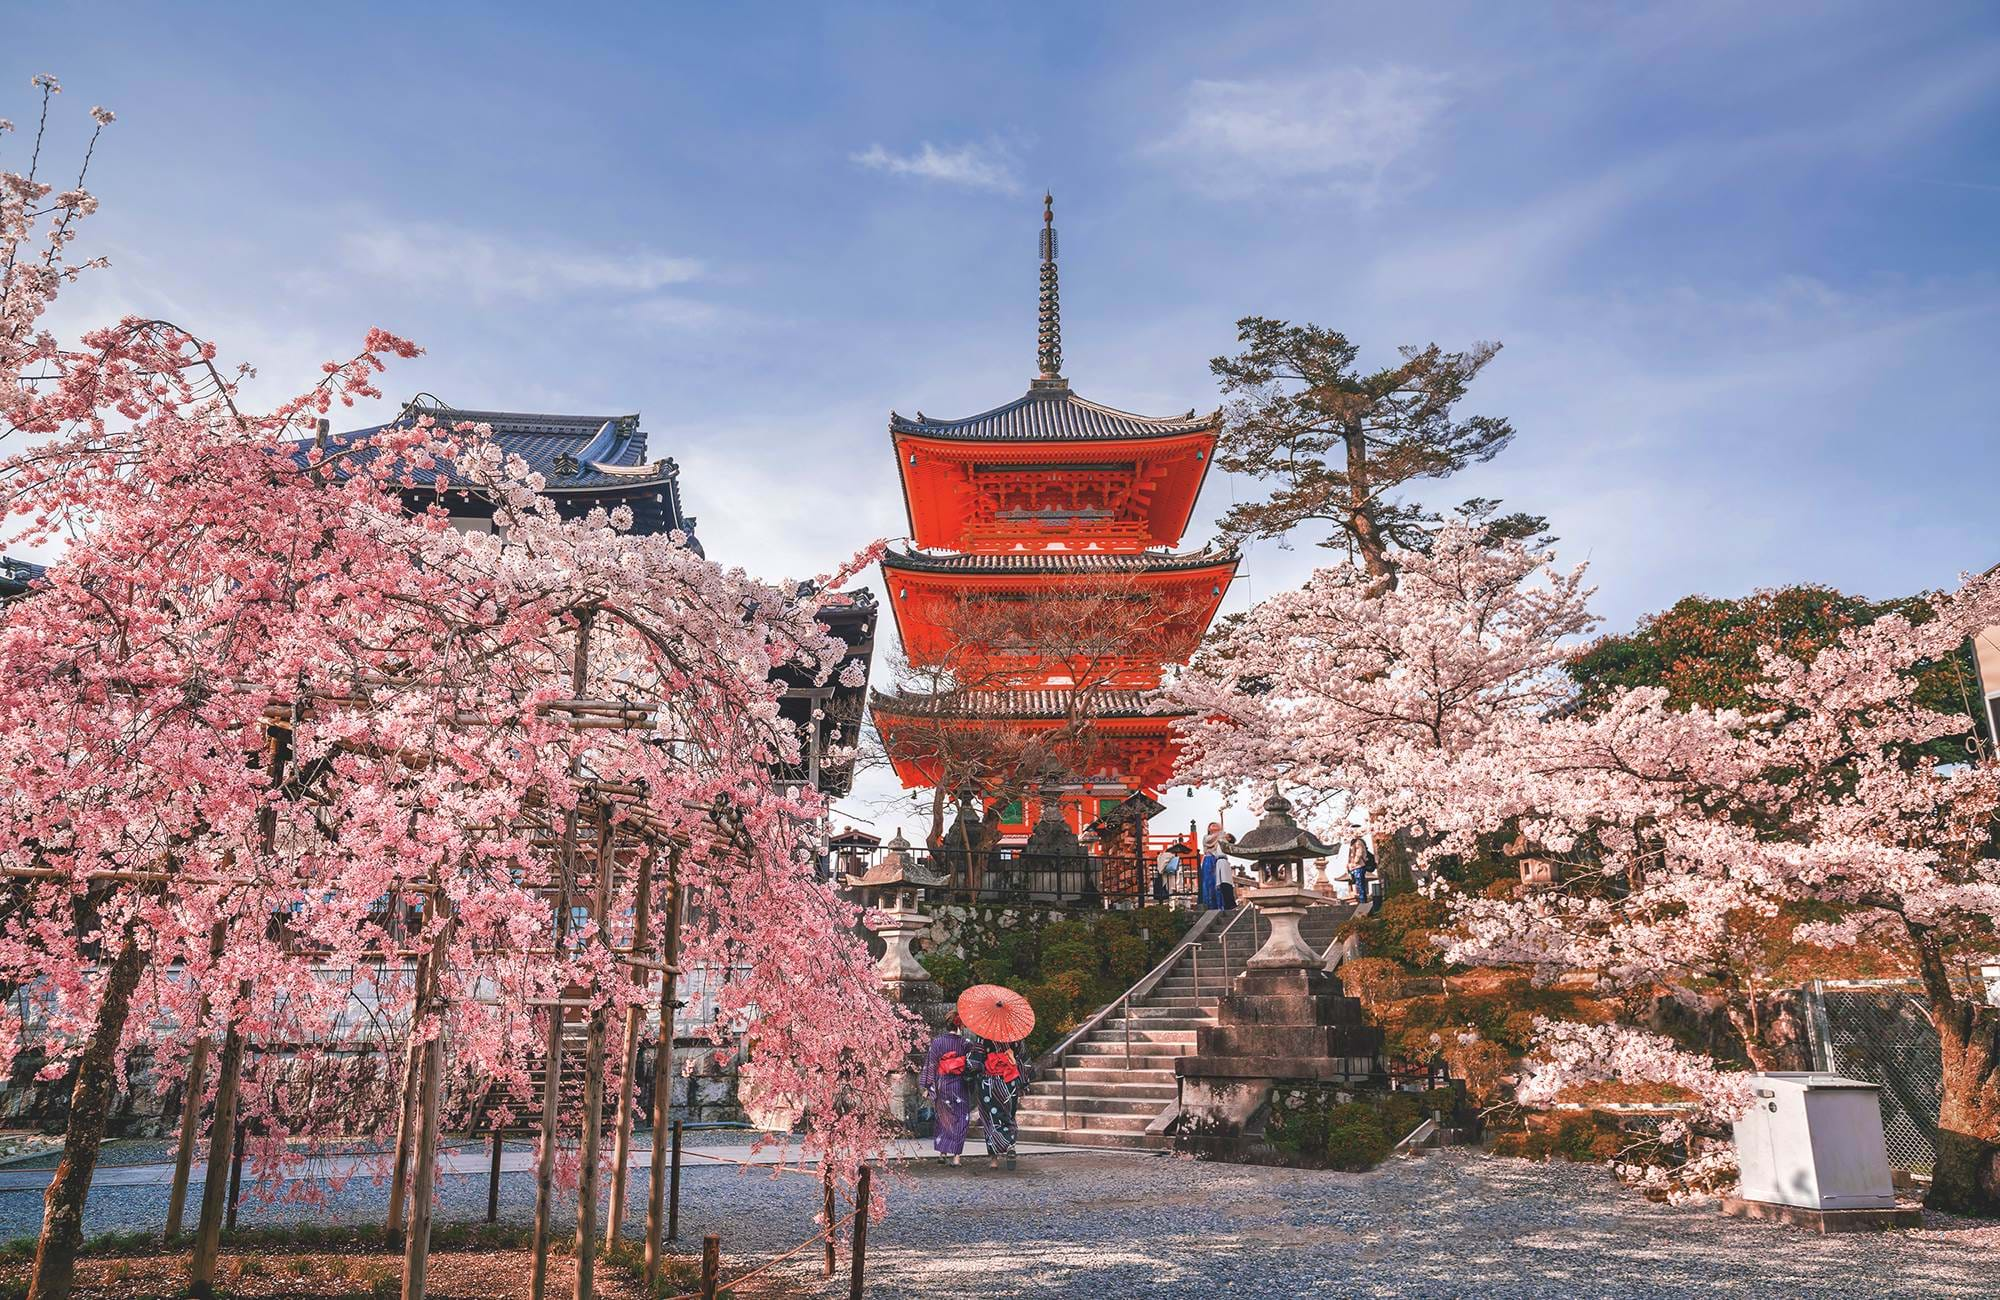 Kiyomizu Dera temple in Kyoto | Rondreizen door Japan met KILROY